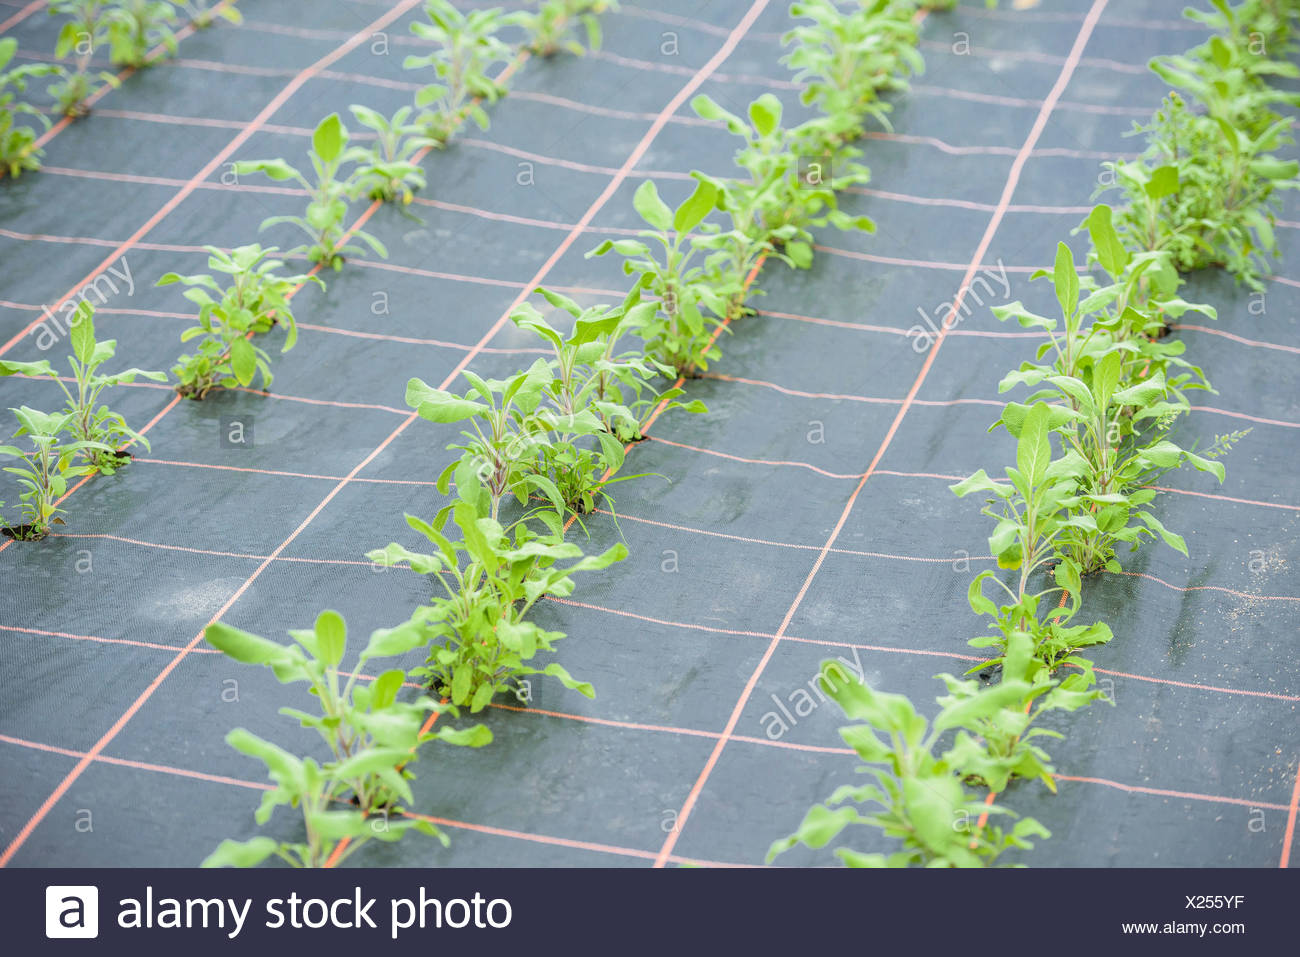 Rows of sage growing - Stock Image